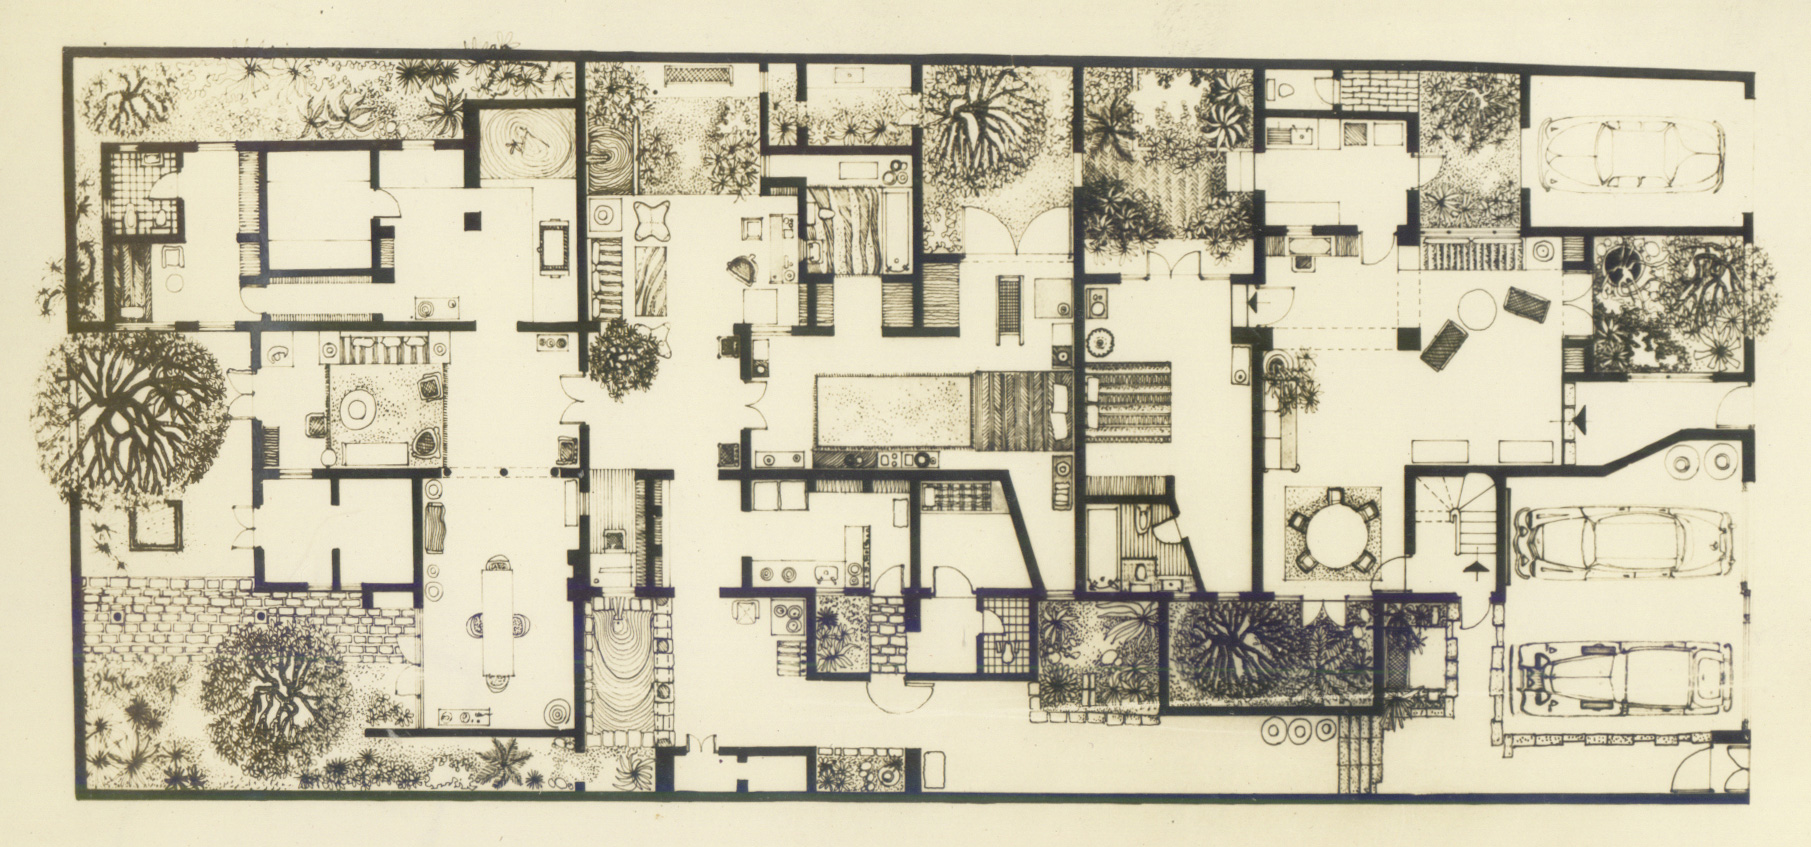 Plan of Bawa's house at 33rd Lane | Geoffrey Bawa | David Robson | STIR